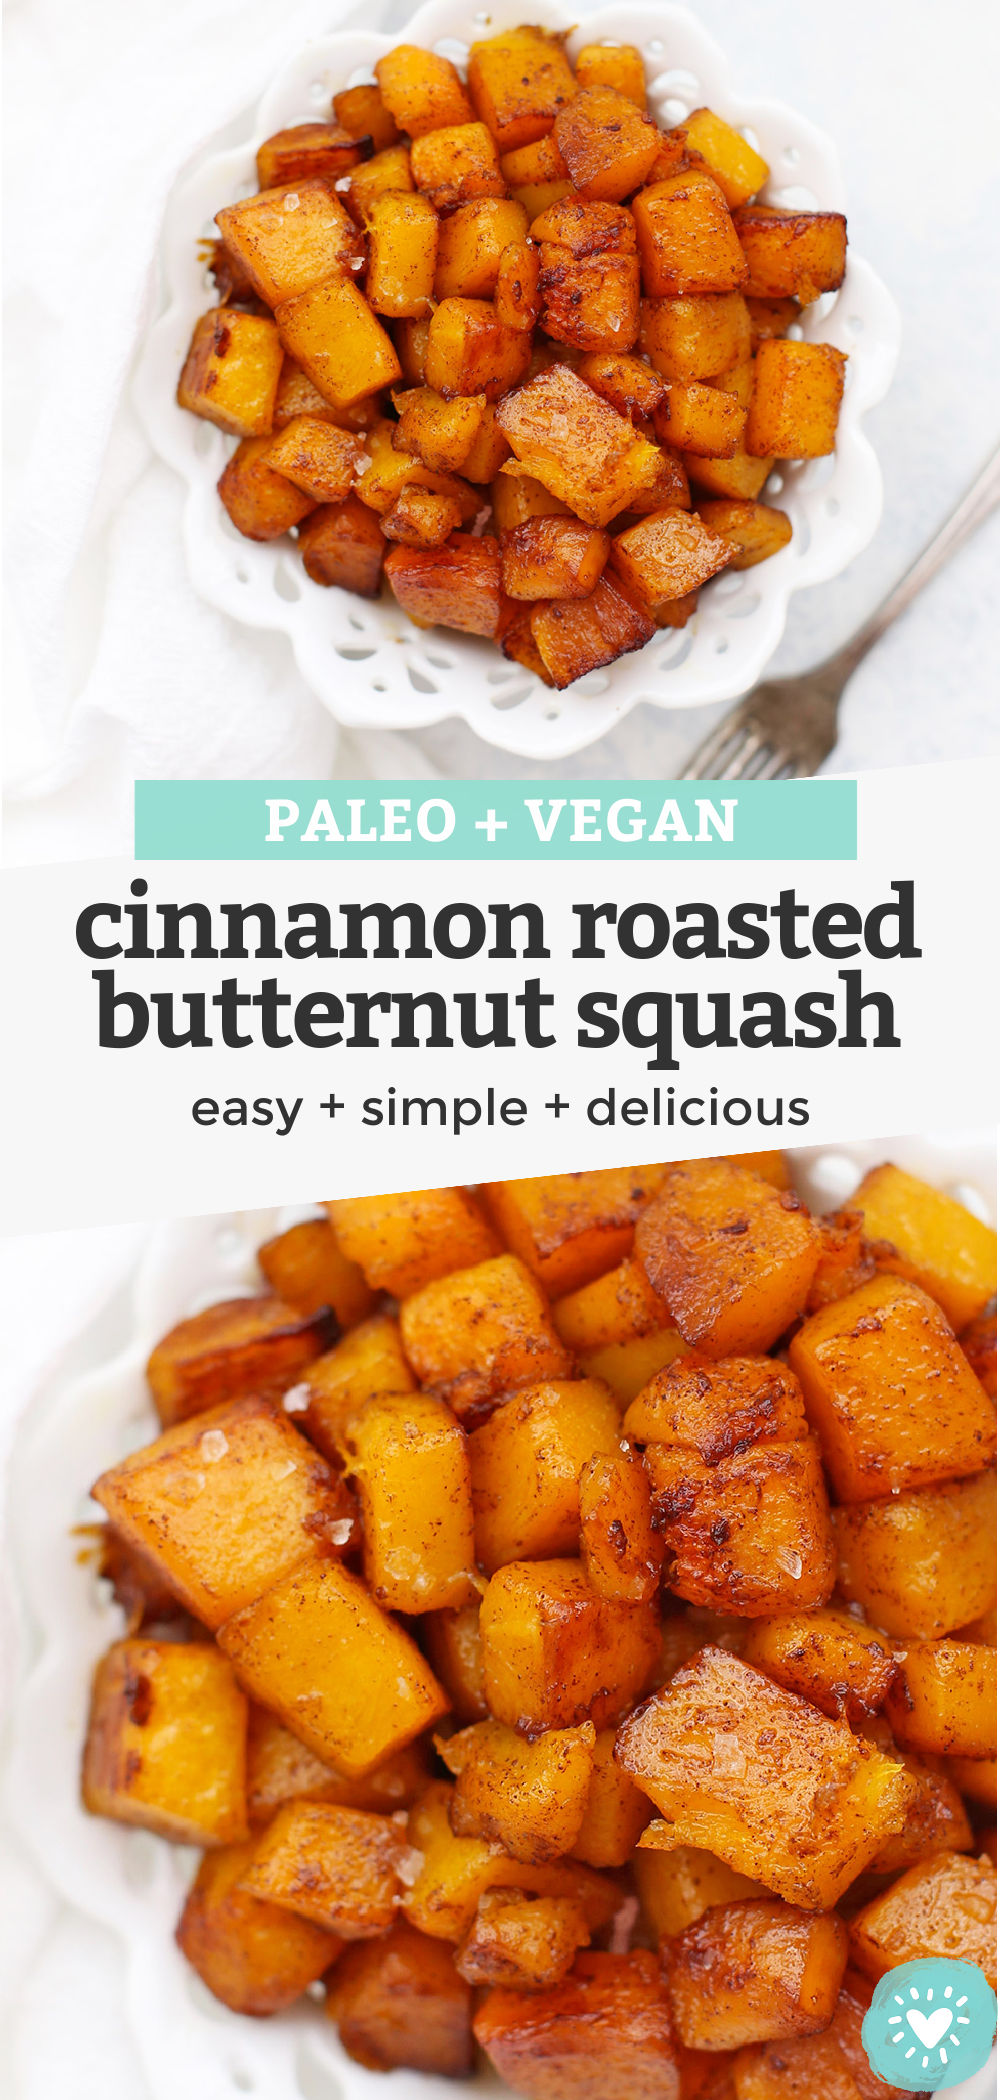 Roasted Cinnamon Butternut Squash - this easy cinnamon squash is such an easy fall side dish! Perfect for Thanksgiving! (allergy-free, vegan, paleo) // Thanksgiving side dish // Roasted squash recipe // Cinnamon Squash Recipe #thanksgiving #paleo #vegan #glutenfree